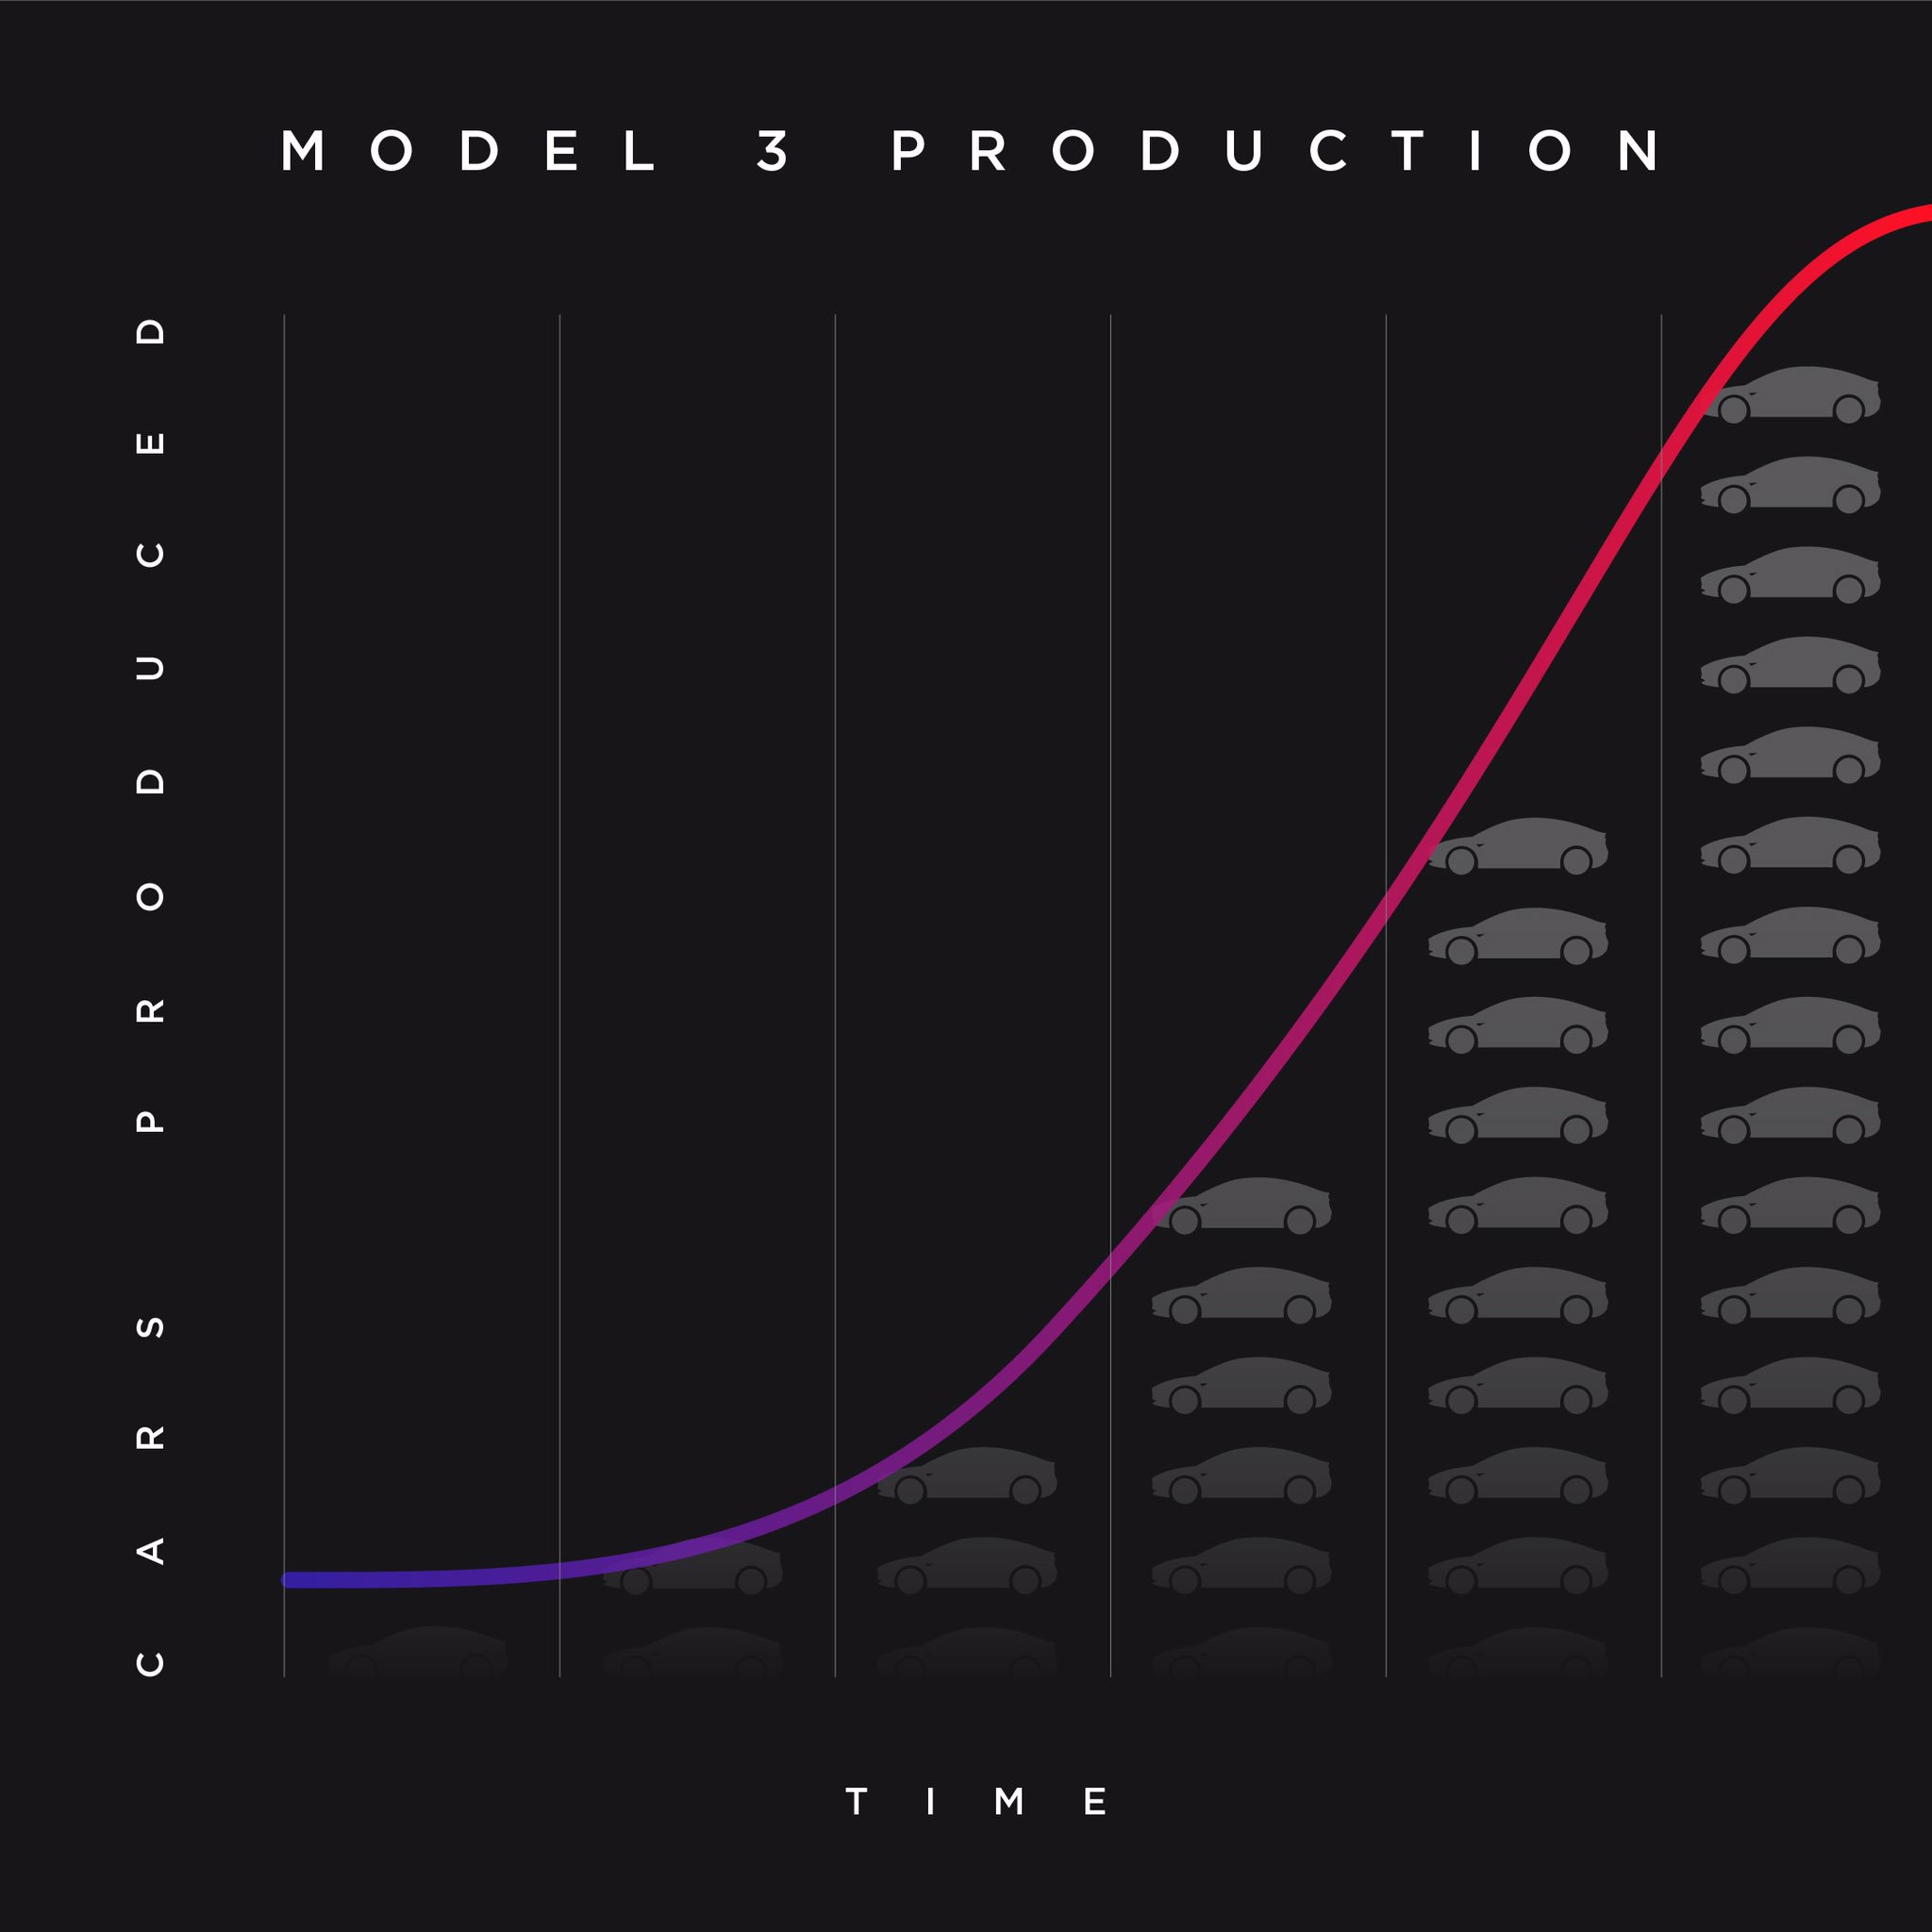 Tesla Model 3 production 'S Curve' graph